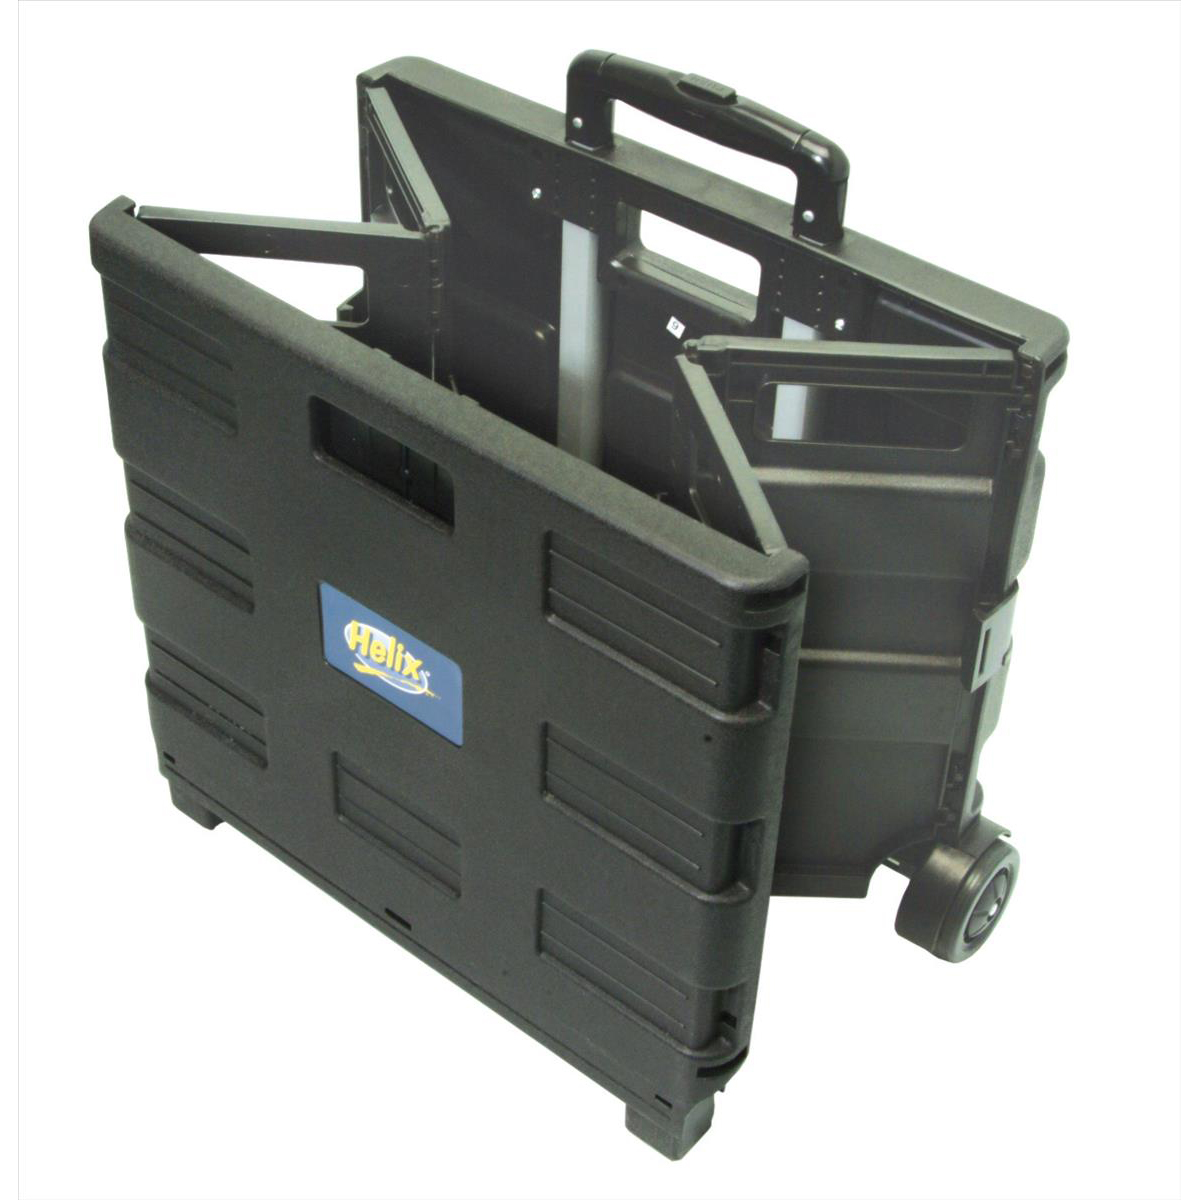 Trolleys Crate Trolley Foldable Capacity 35kg/44 litres 430x380x1000mm Black